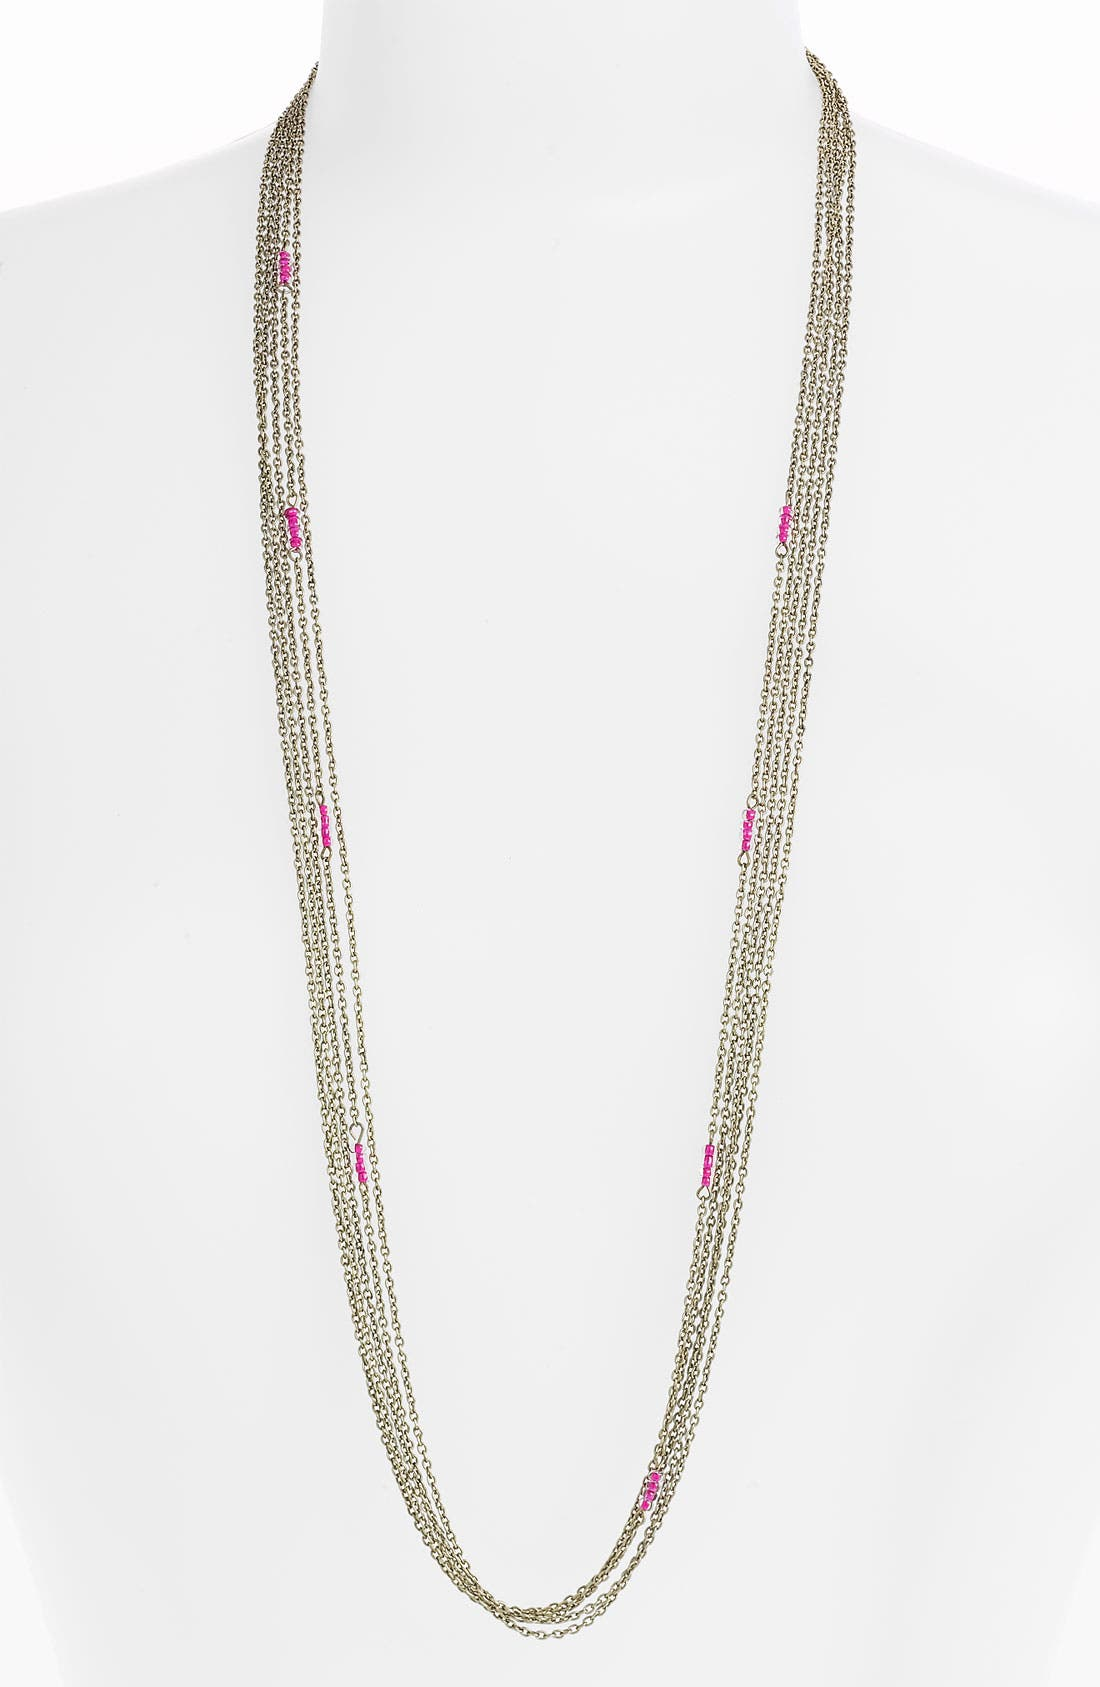 Alternate Image 1 Selected - Stephan & Co. Multi Chain Necklace